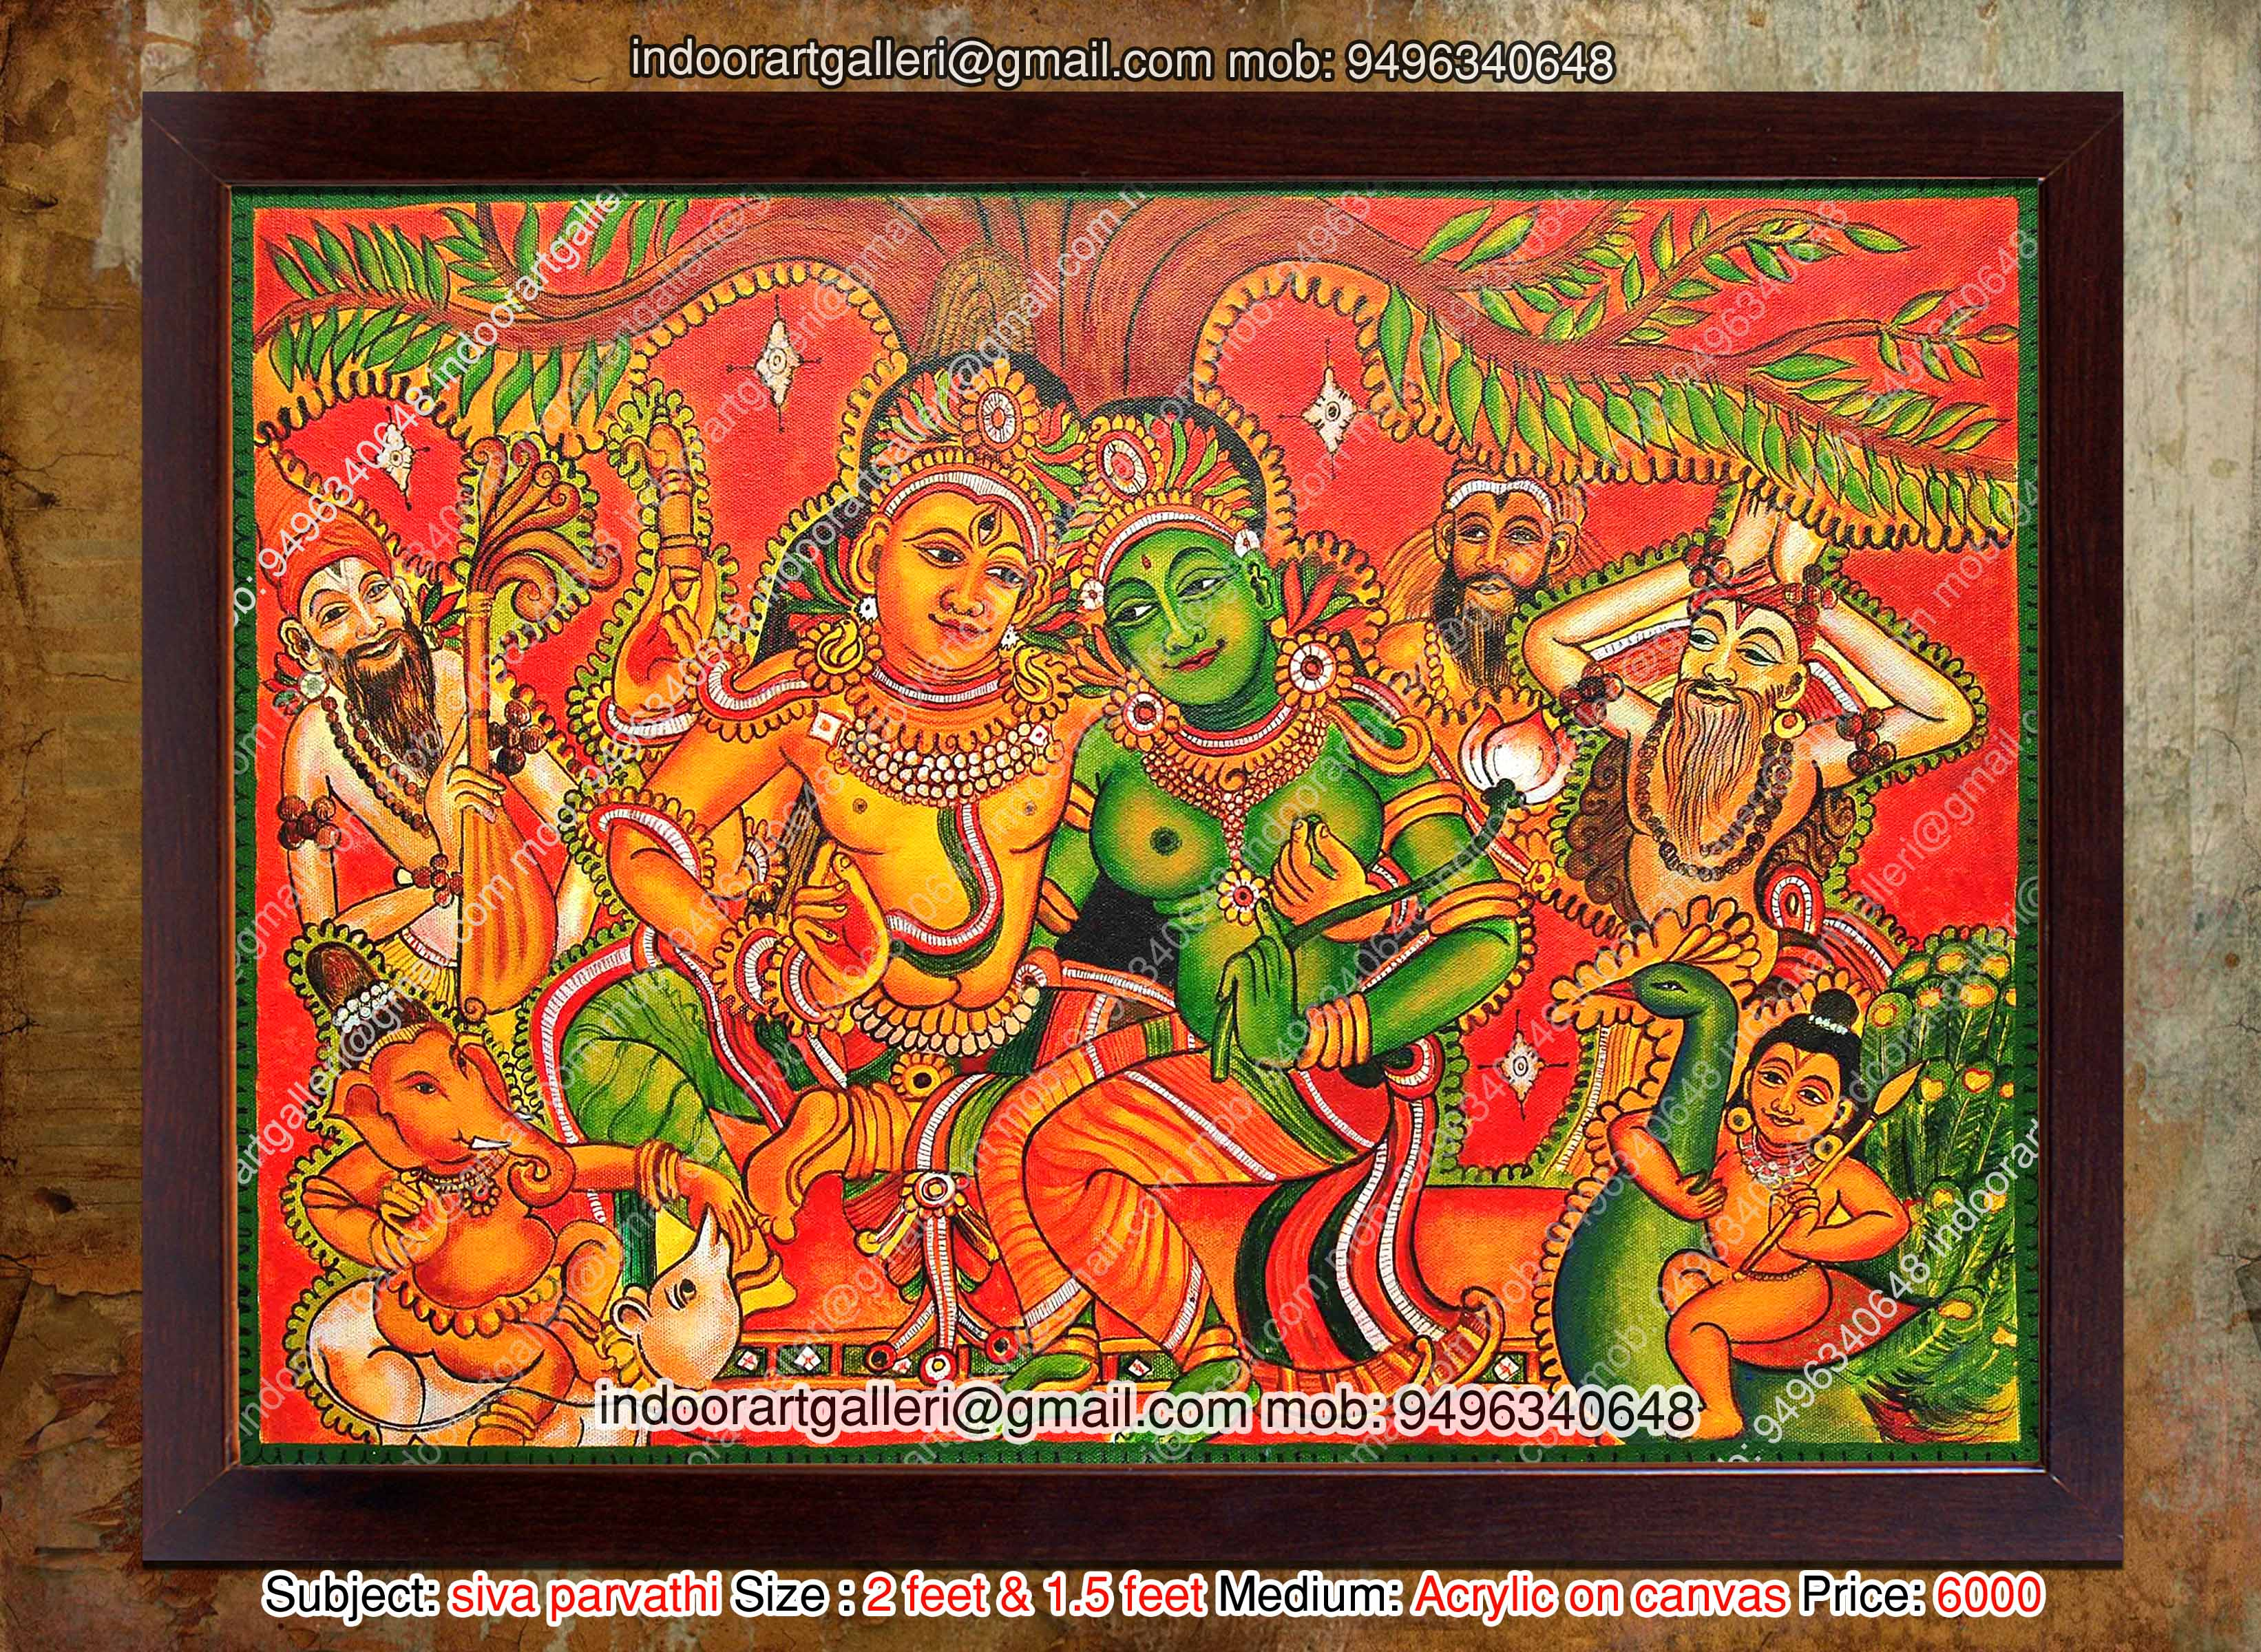 Siva parvathi mural painting by indoorartgalleri on deviantart for Art mural painting